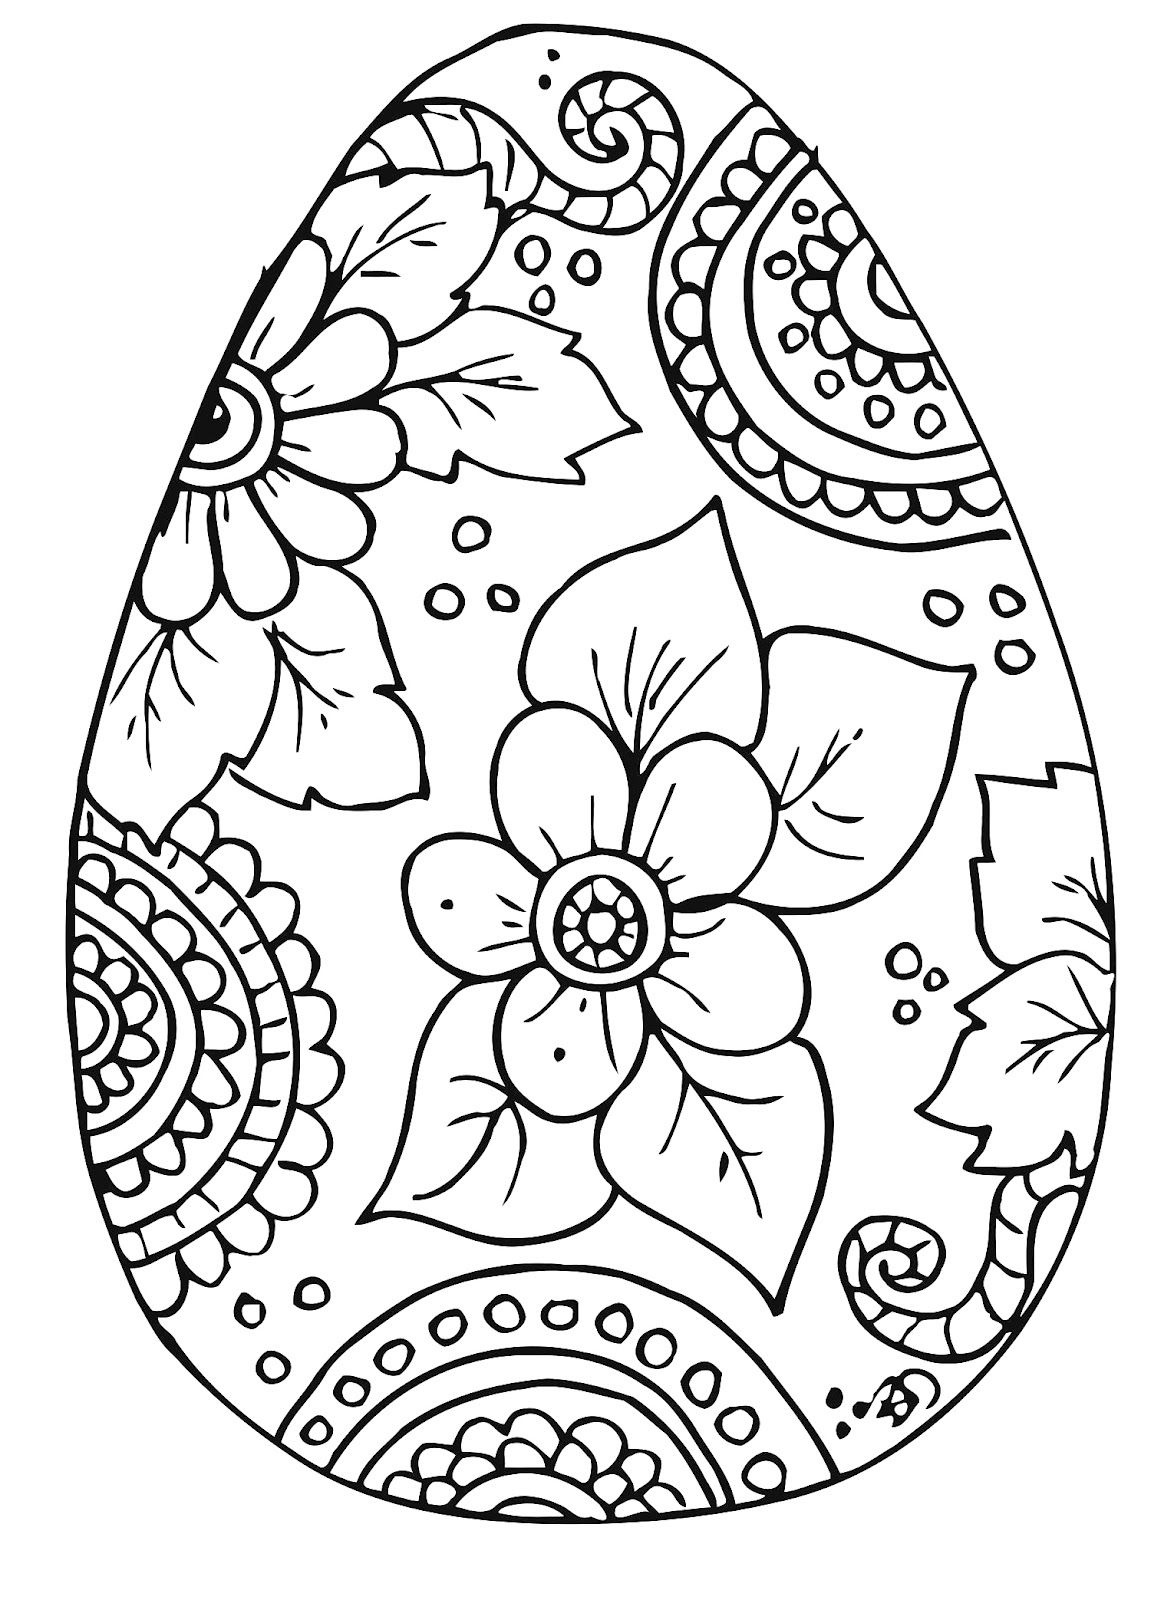 Free Easter Egg Coloring Pages | Easter | Pinterest | Easter - Free Easter Color Pages Printable